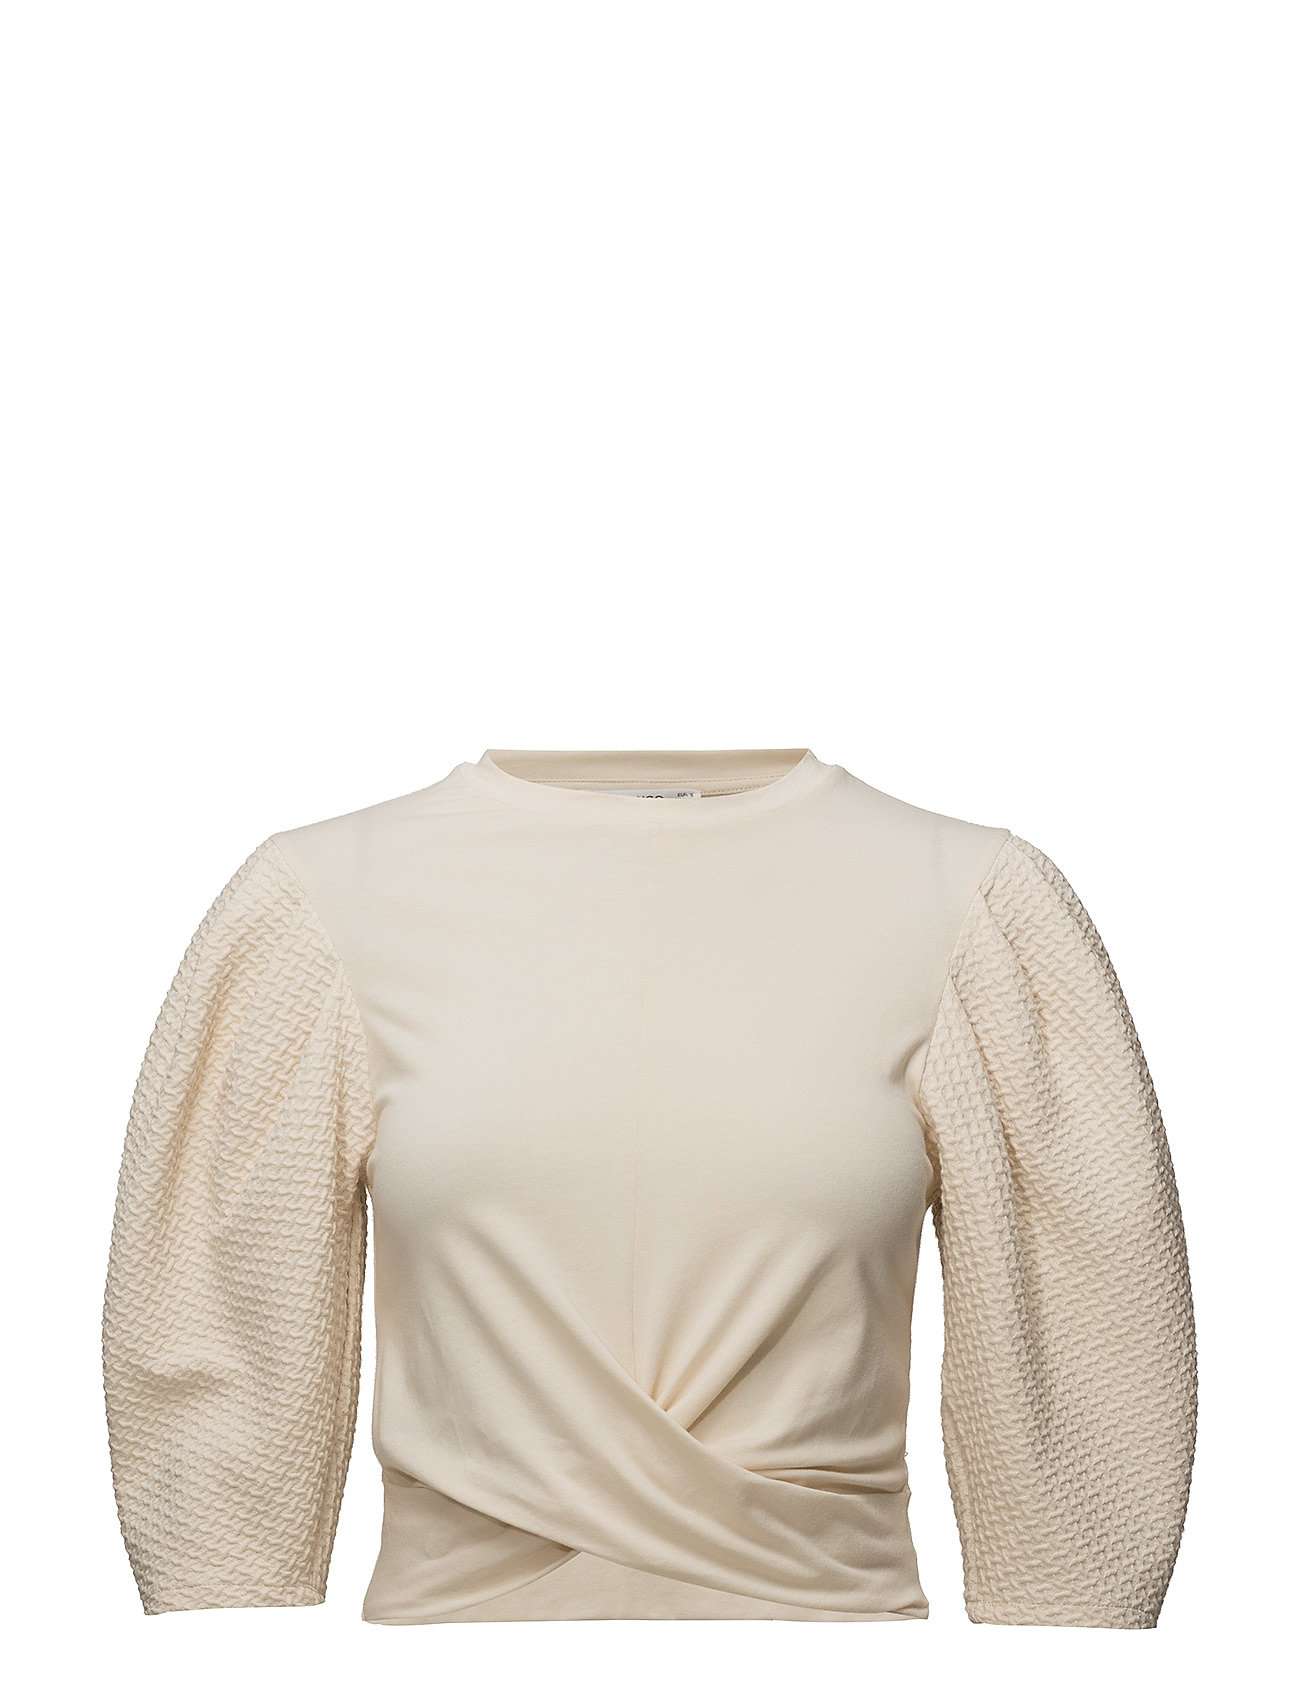 Image of Puffed Sleeves T-Shirt (2789555599)